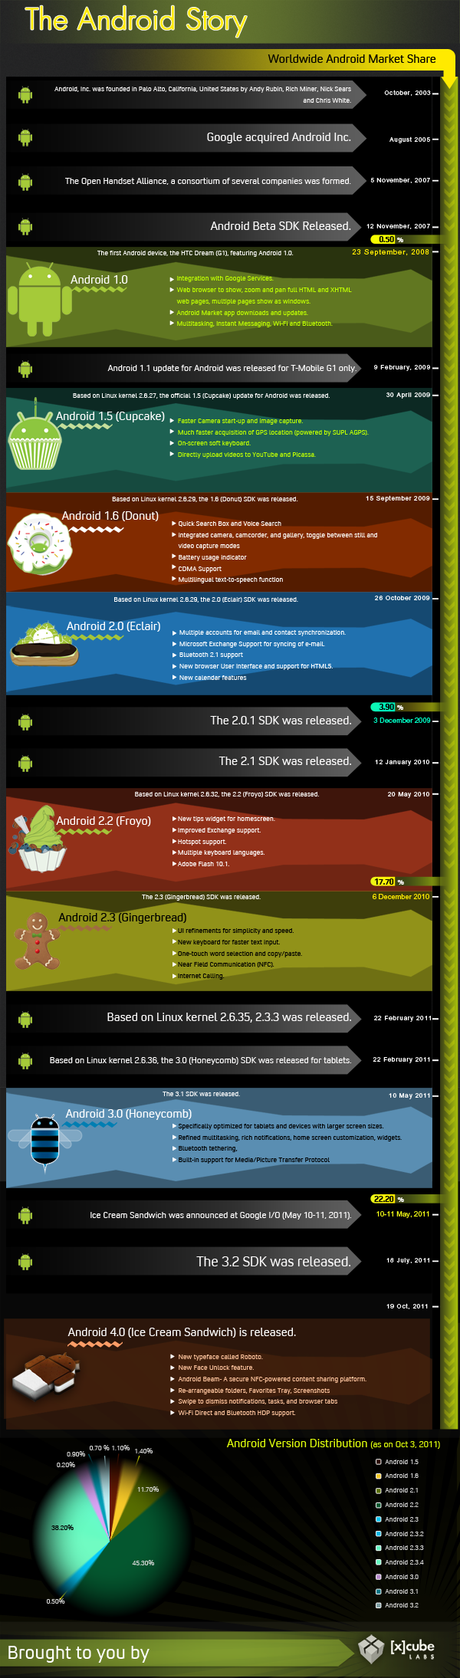 the-android-story-infographic-sullevoluzione--L-nDA8XT.png